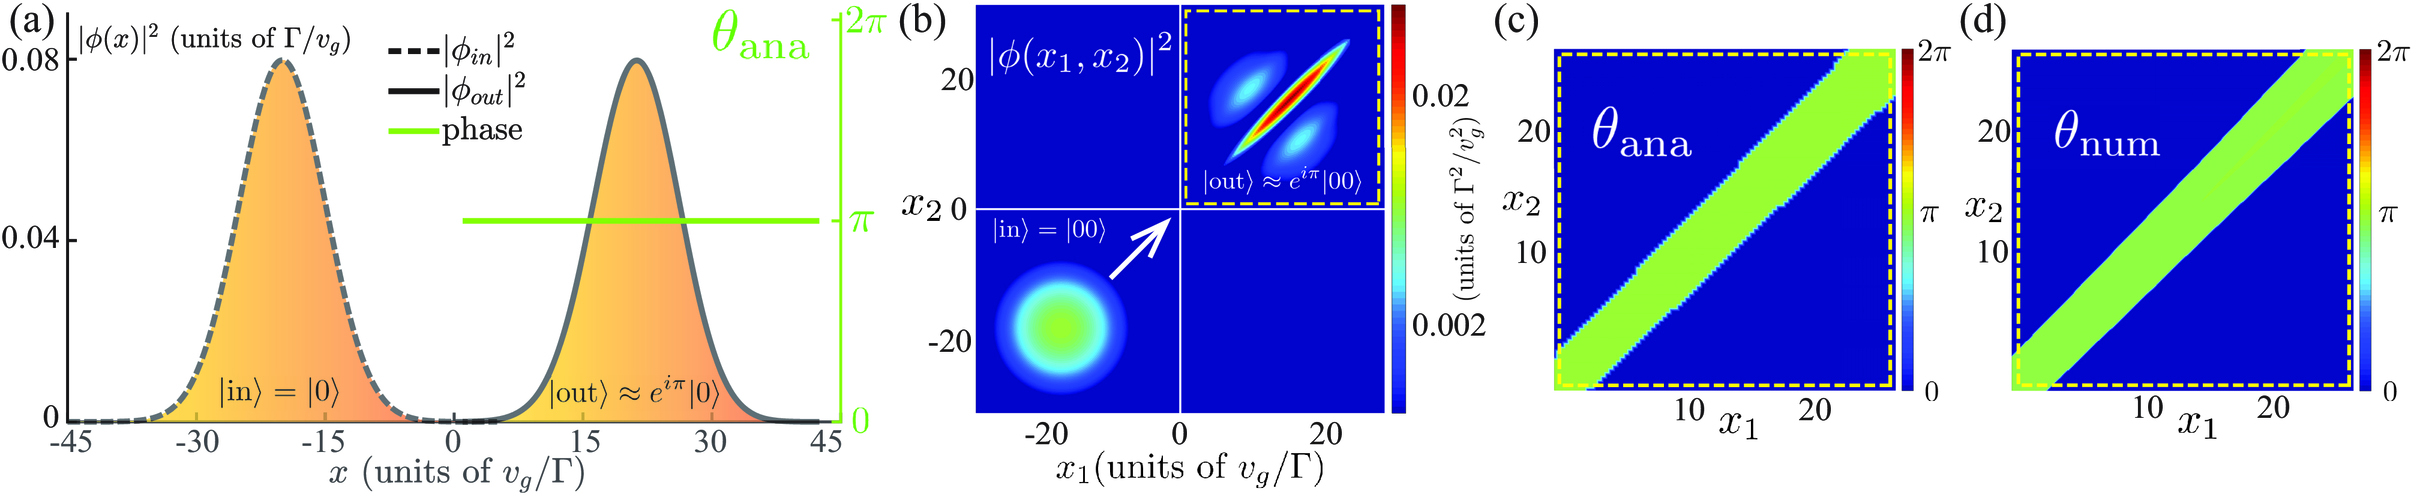 Deterministic two-photon controlled phase gate by exploiting